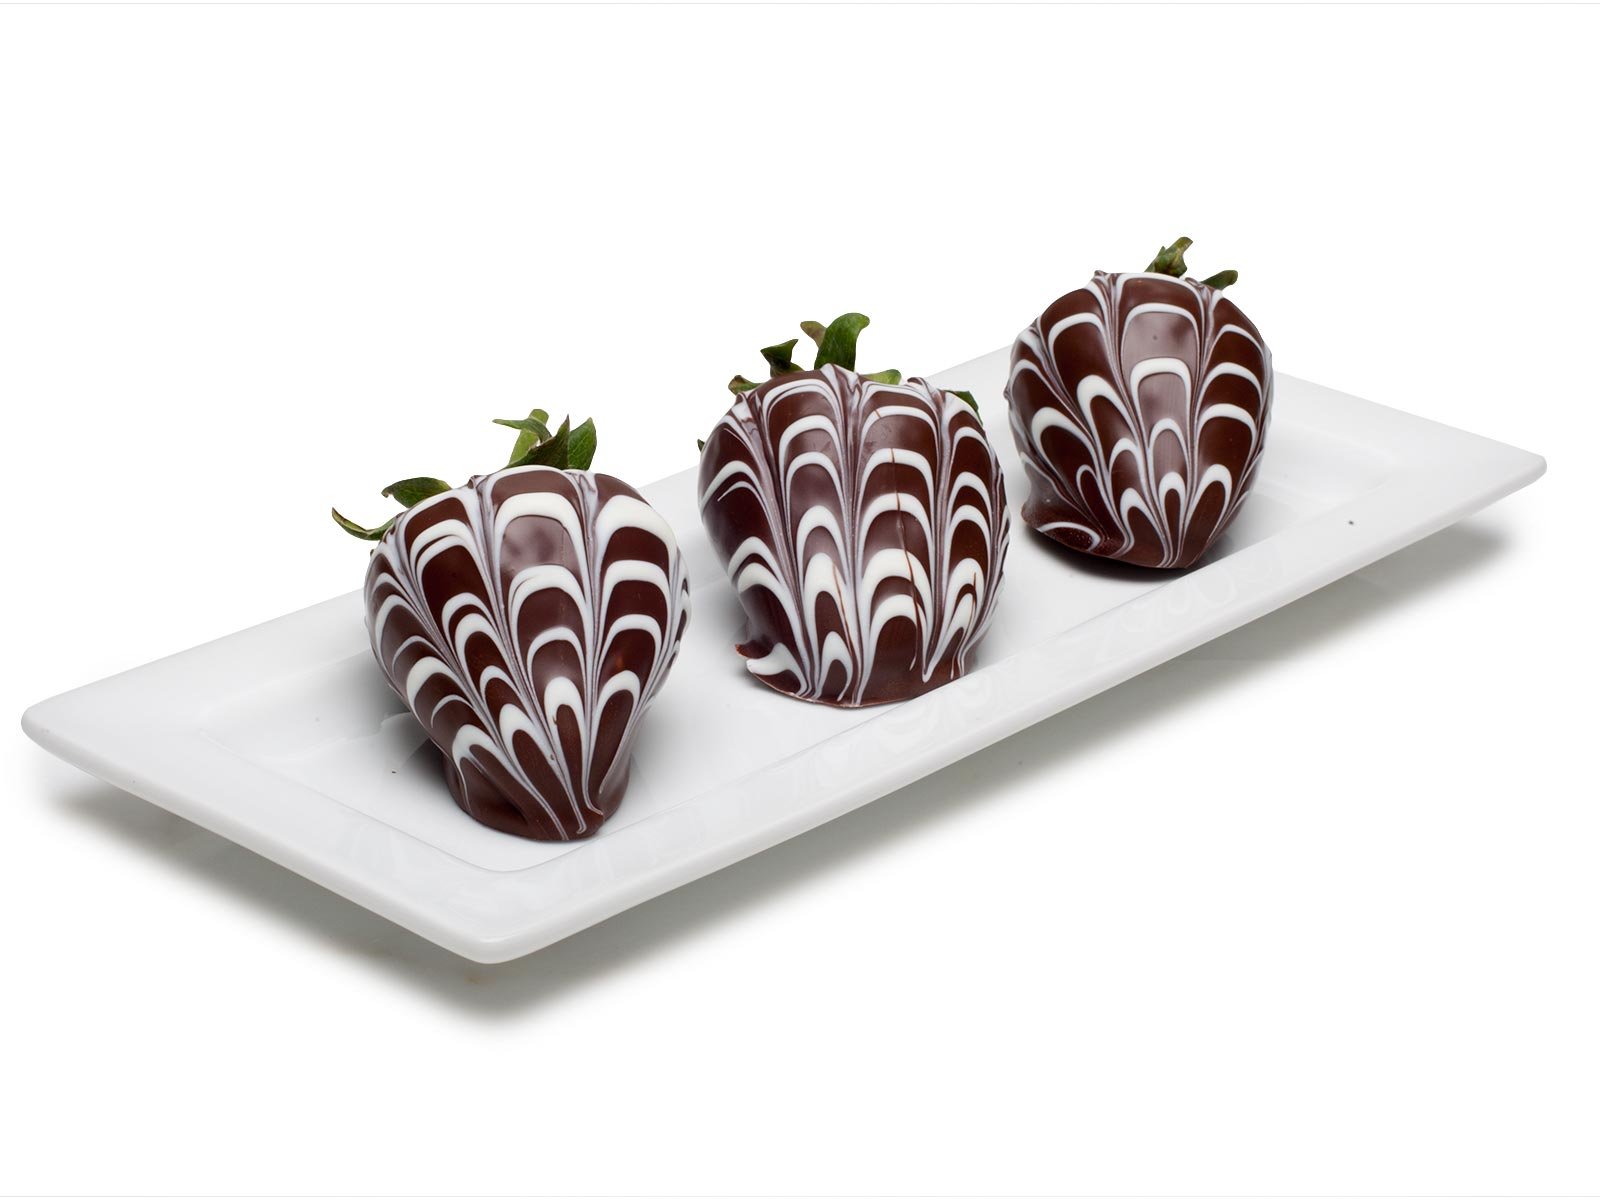 Chocolate Strawberries, Marbled Dark and White